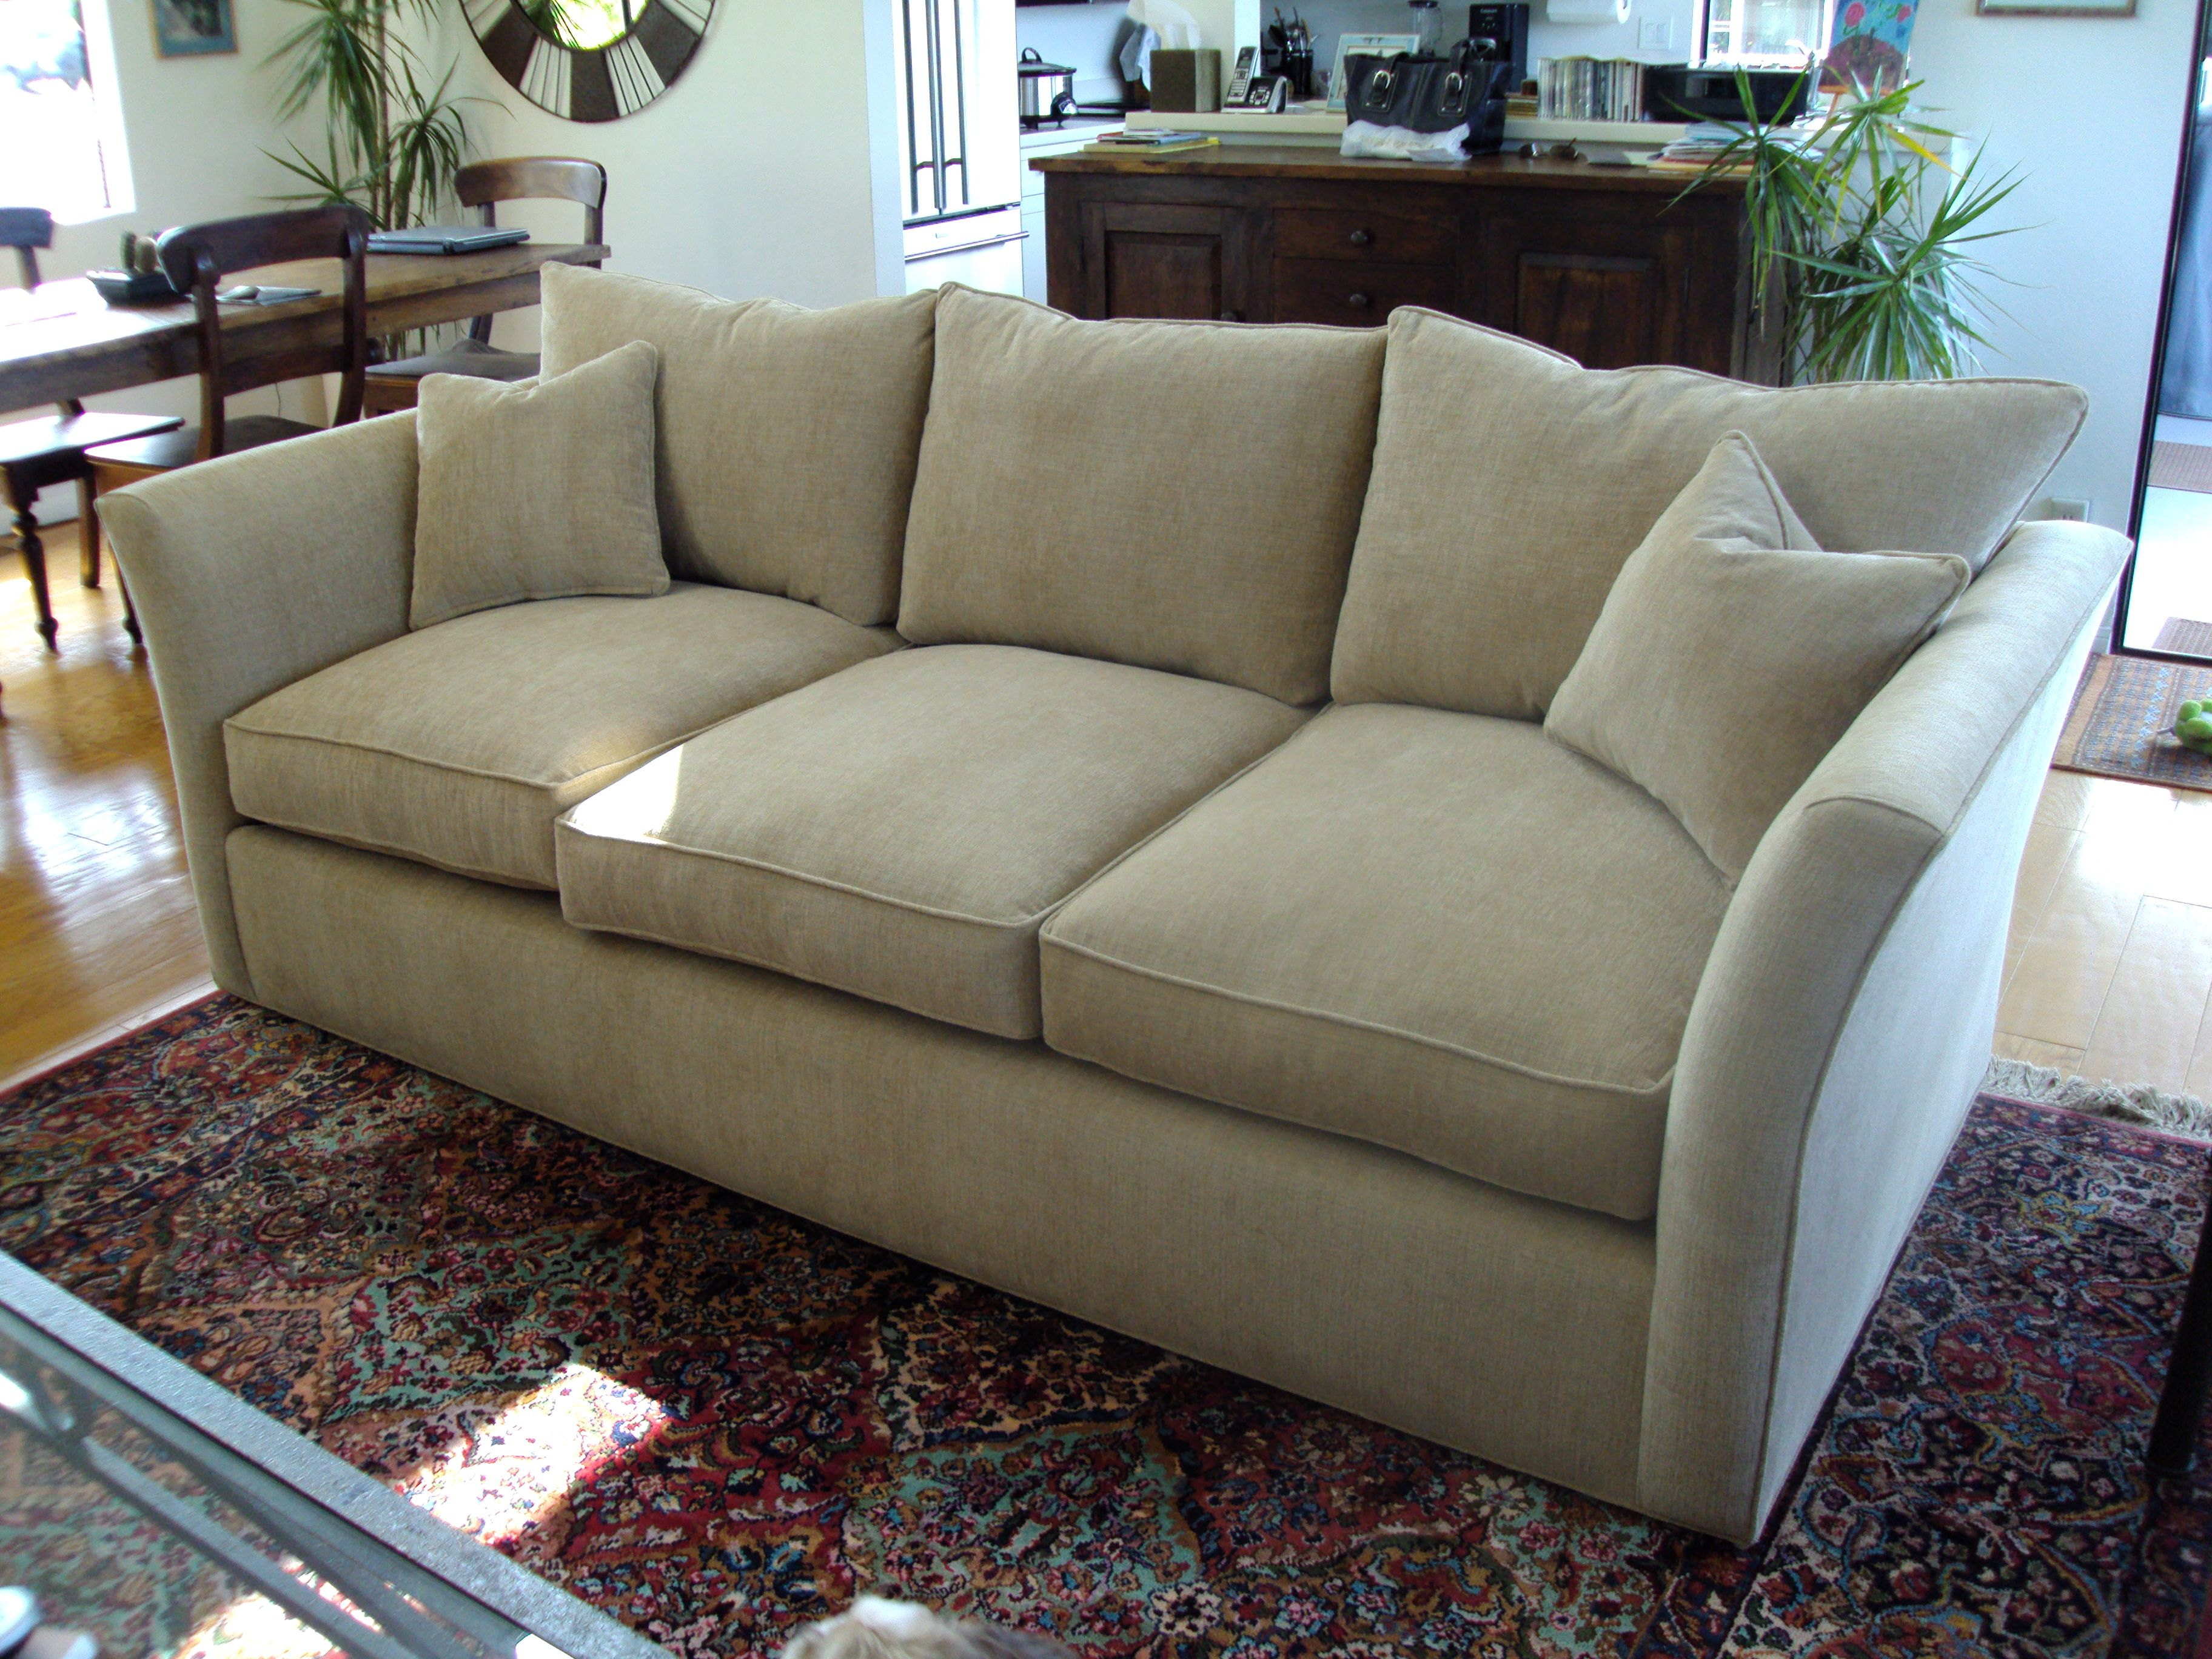 Can A Leather Couch Be Reupholstered